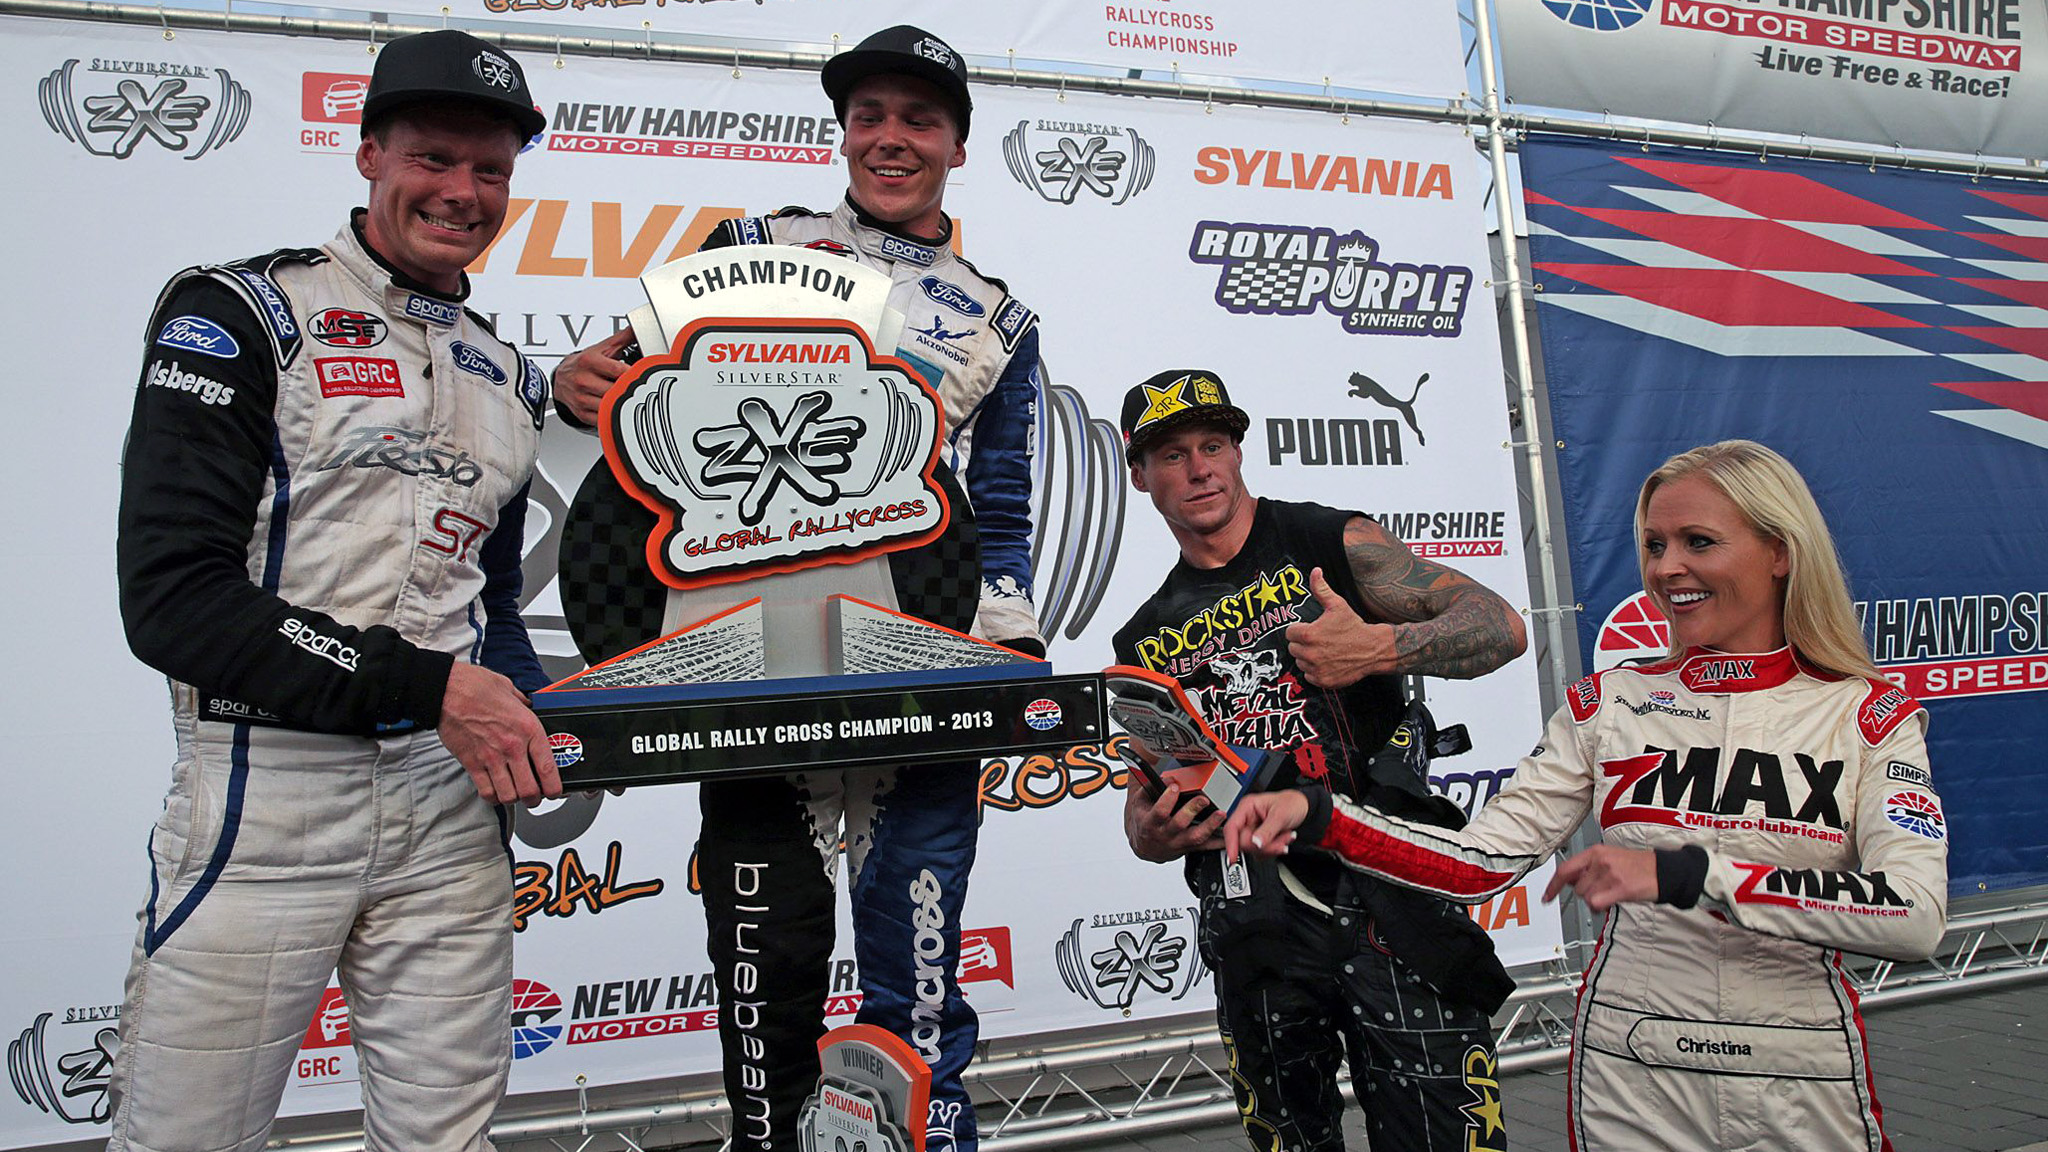 New Hampshire Podium